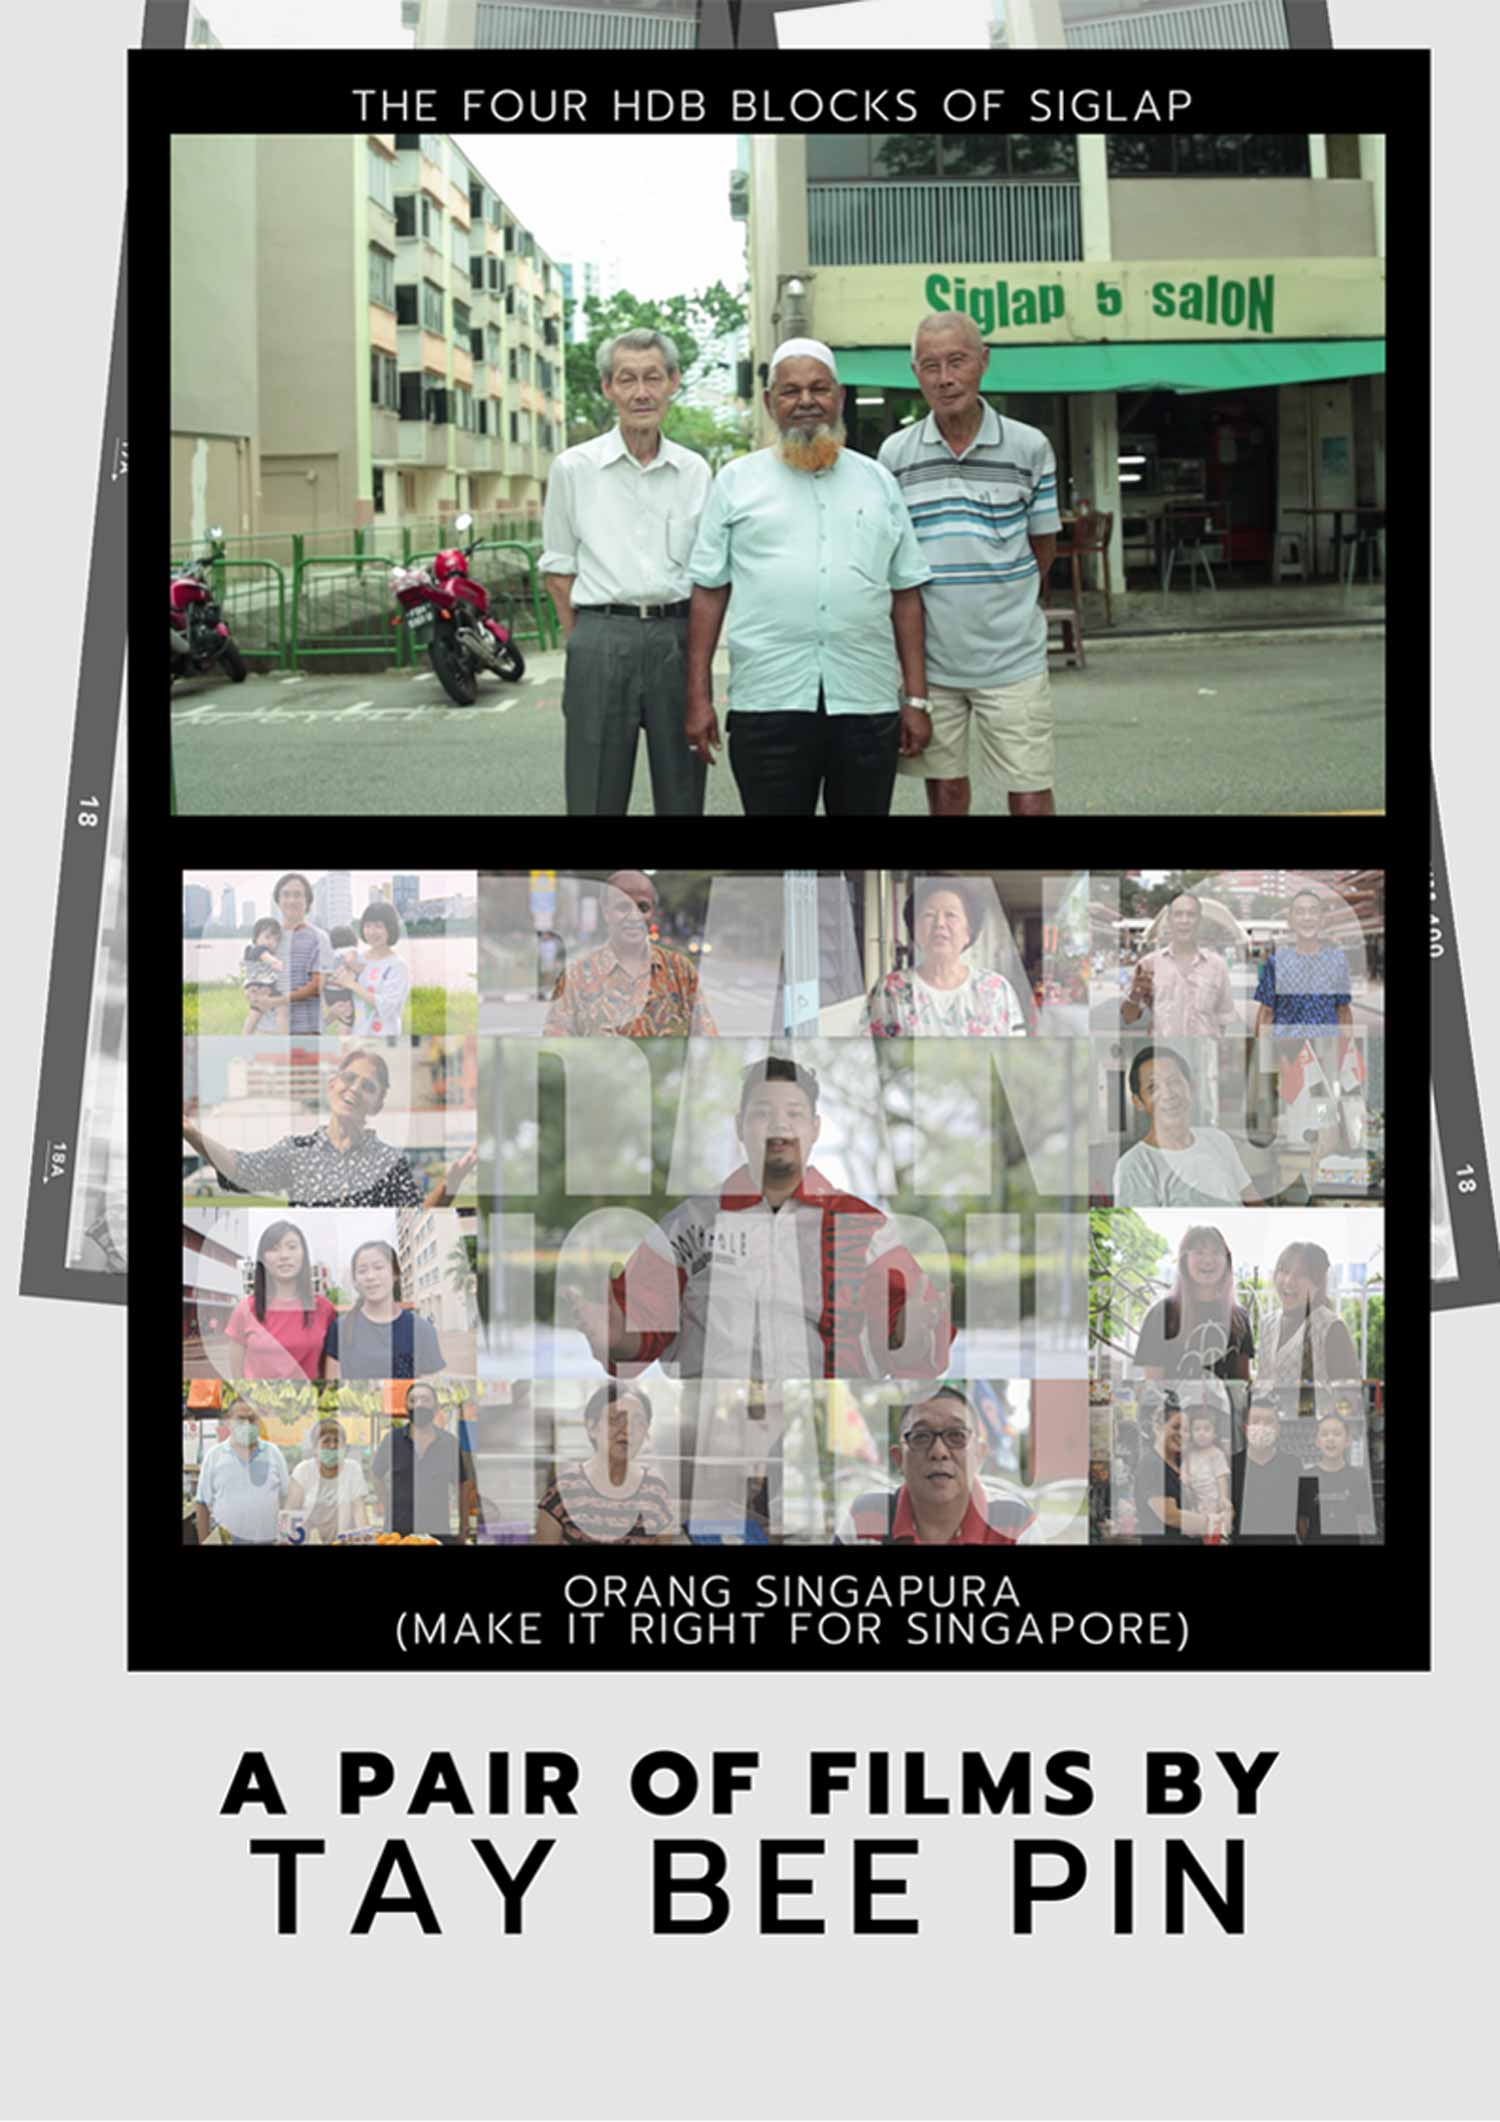 The Four HDB Blocks of Siglap + Orang Singapura (FreedomFilmFest 2020)